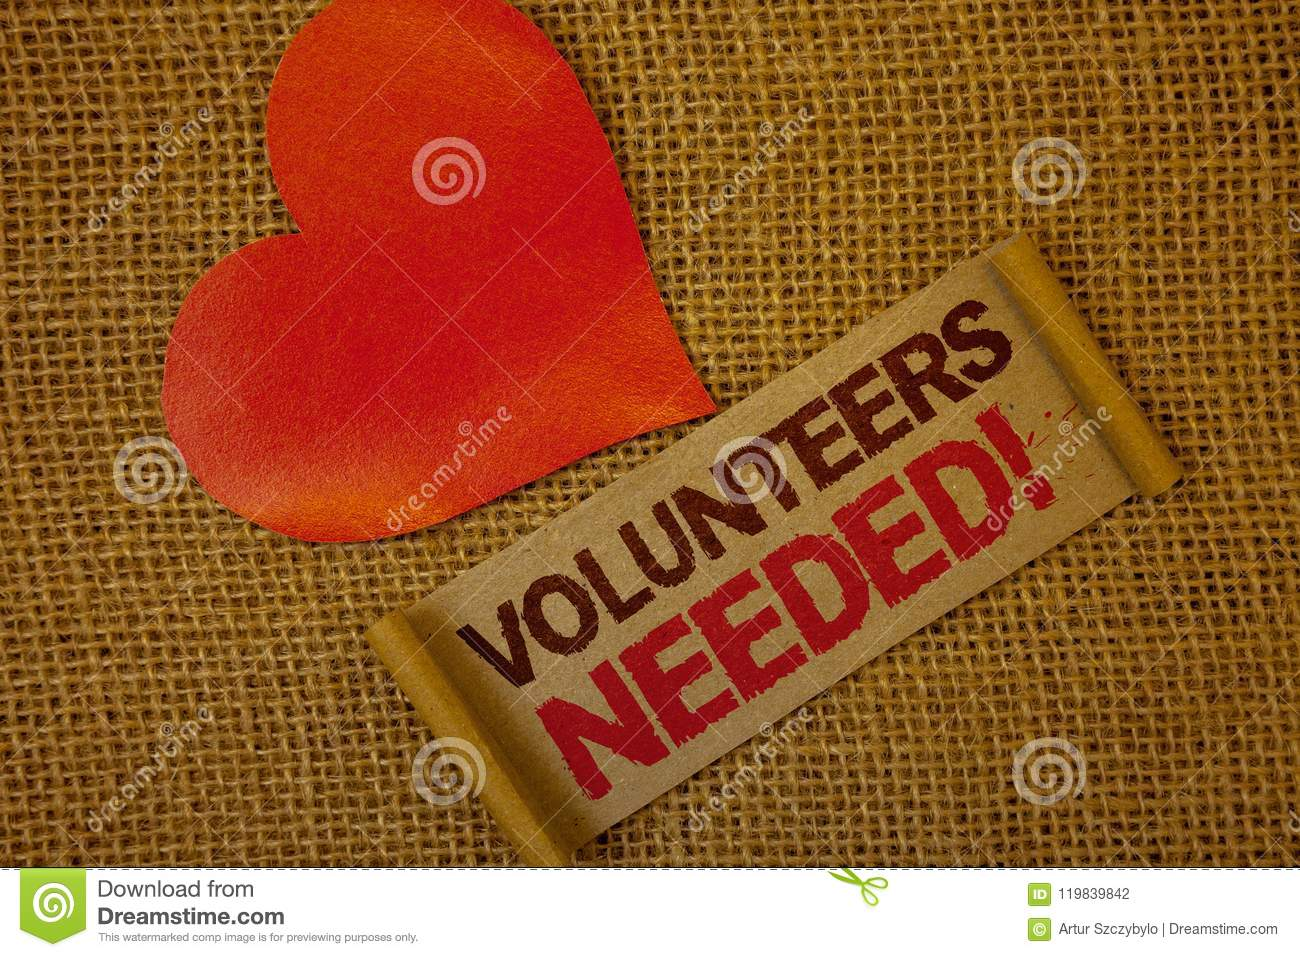 review of motivation in volunteering commerce essay A literature review follows an essay format (introduction, body, conclusion), but if the literature itself is the topic of the essay , your essay will need to consider the literature in terms of the key.